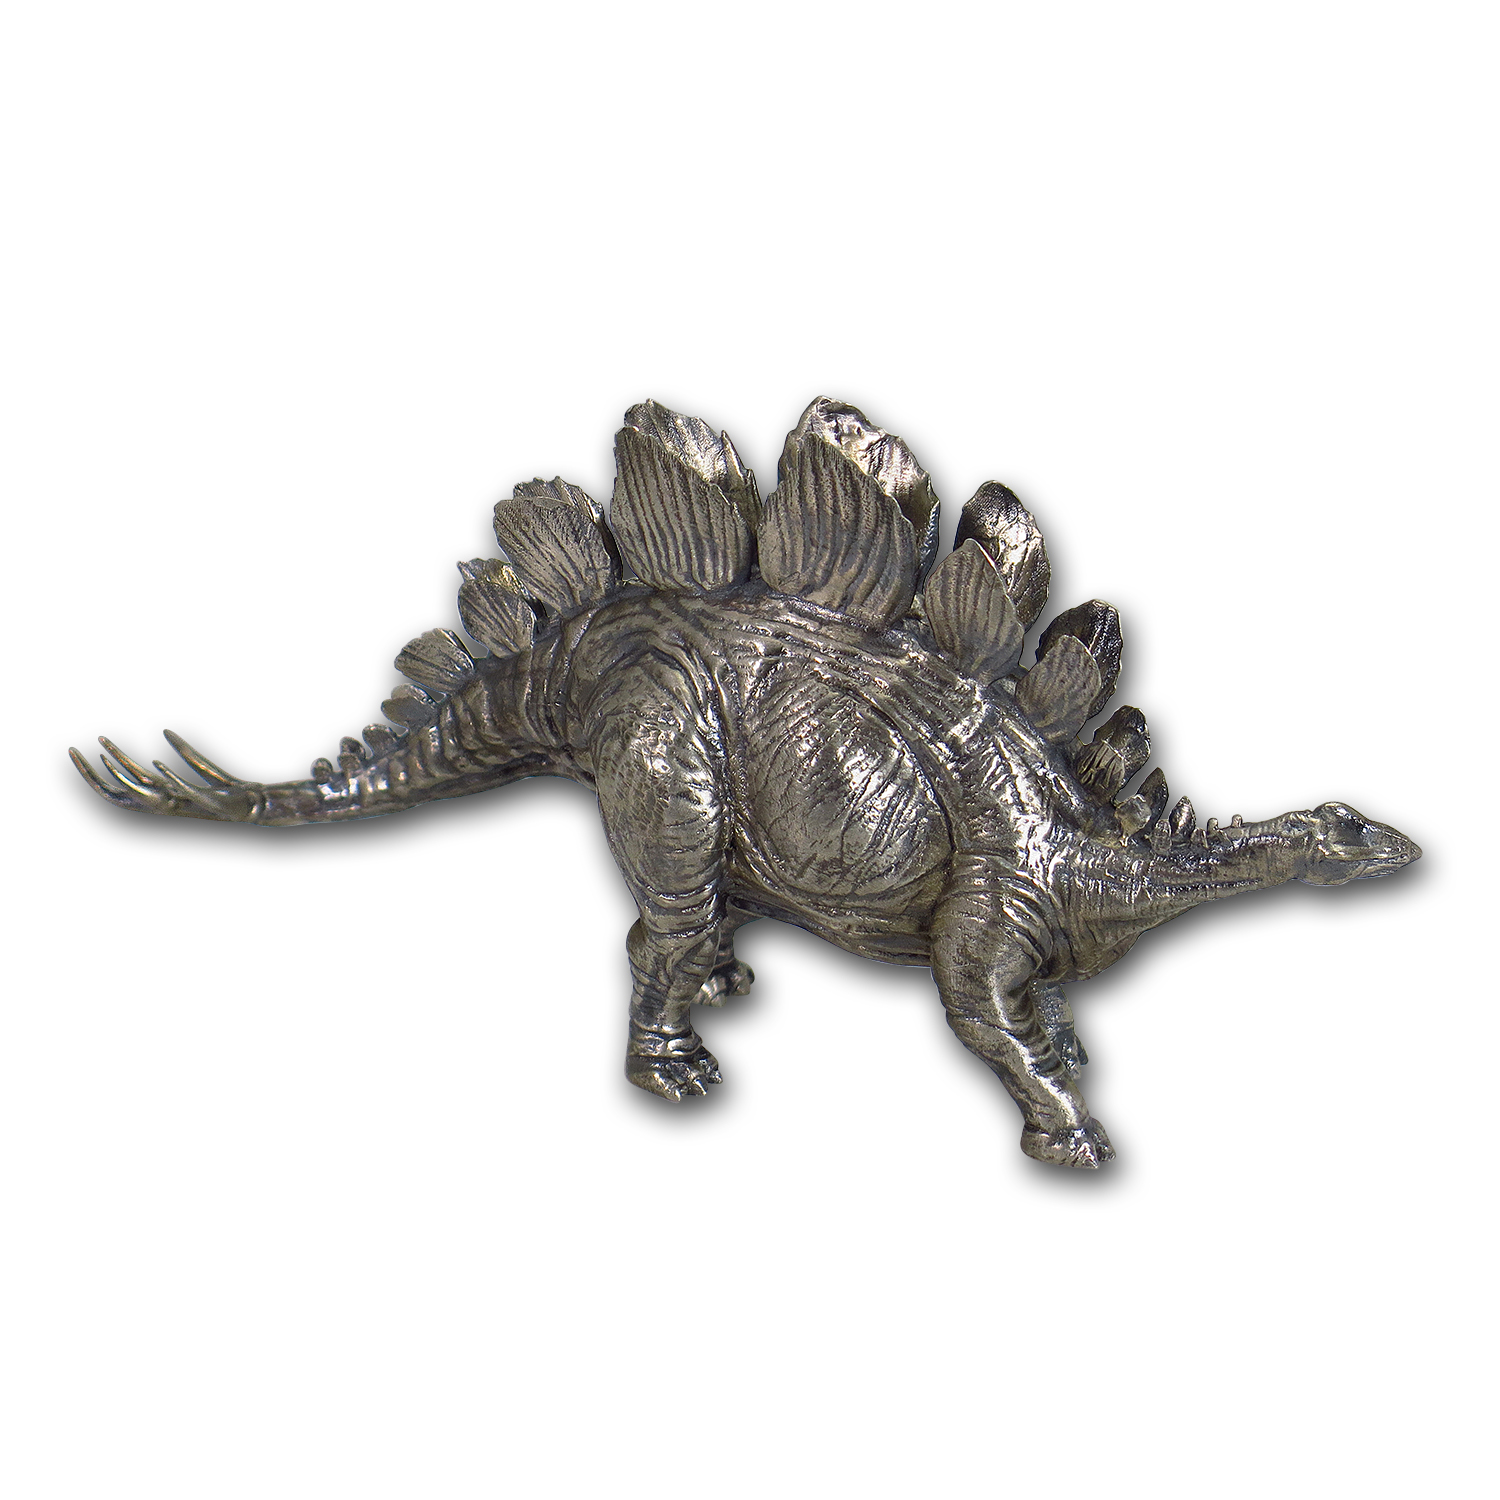 8 oz Silver Antique Statue - Stegosaurus